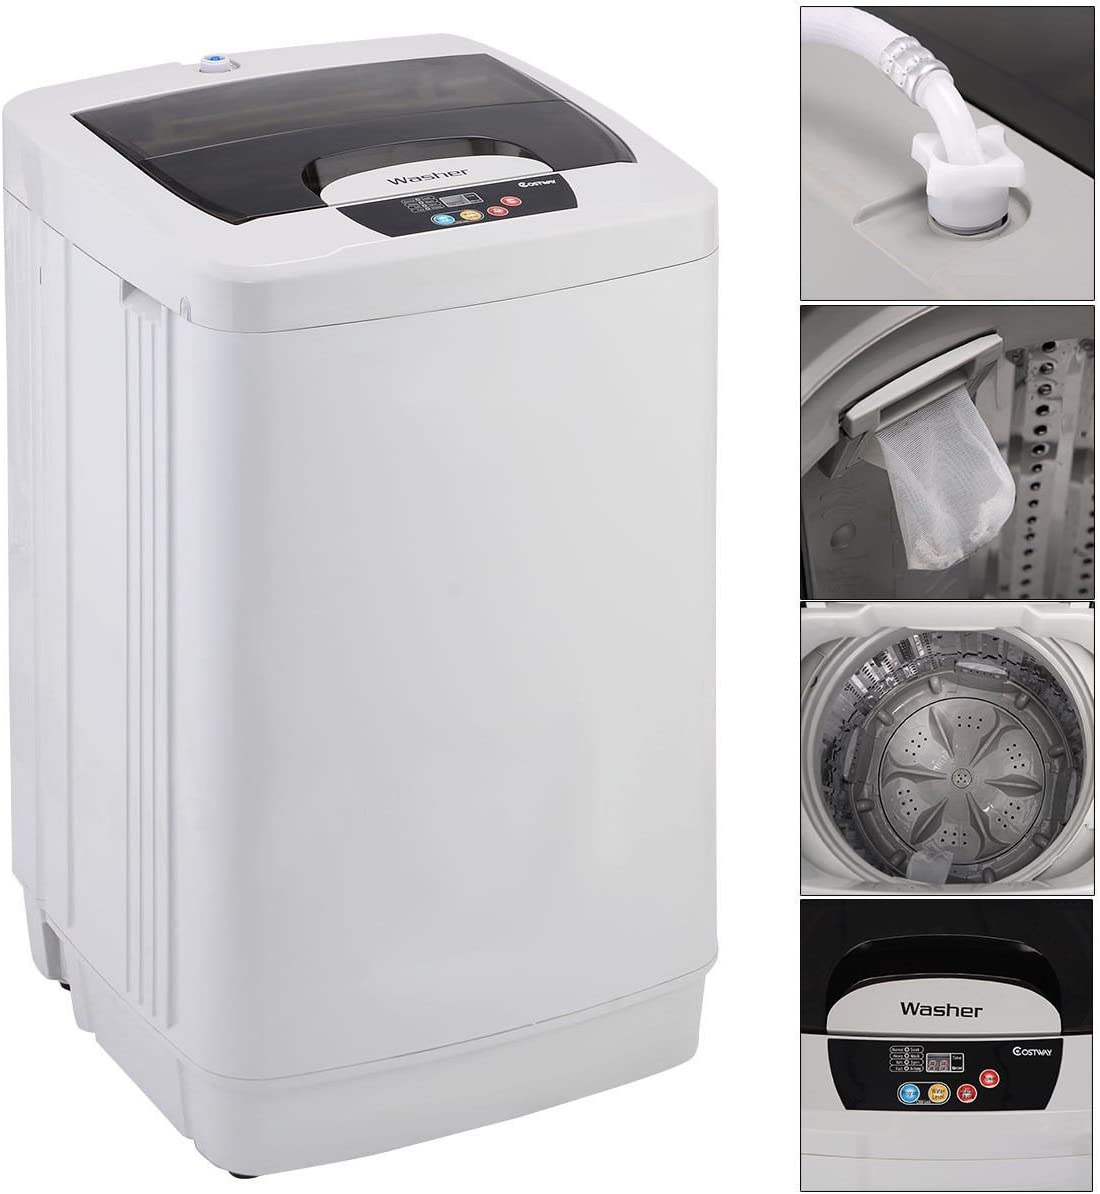 Top 10 Best Portable Washing Machines Reviews in 2020 10